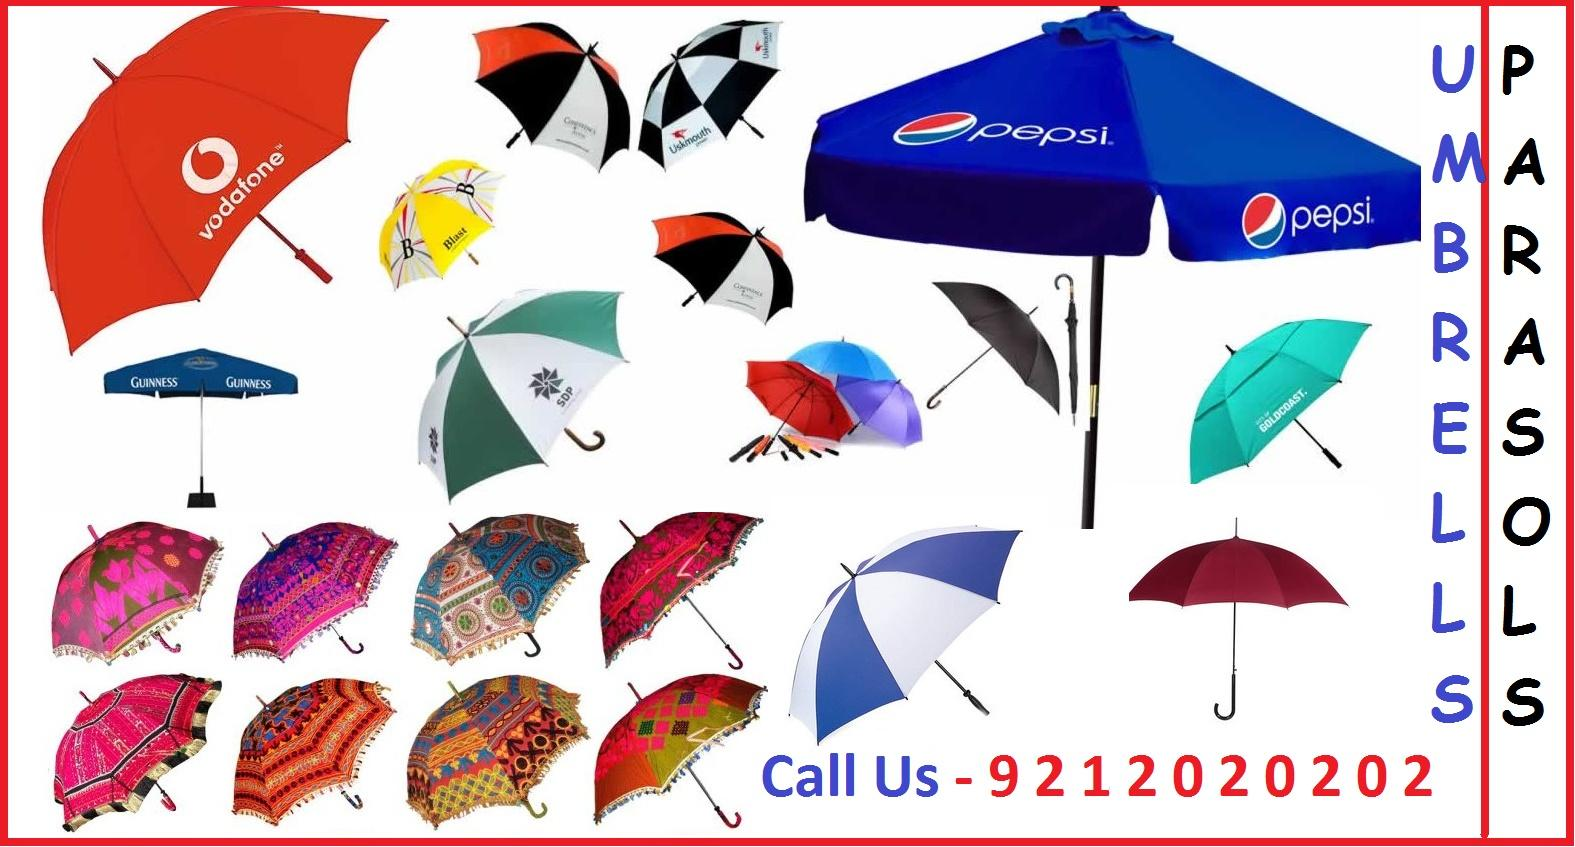 Advertising Umbrella Manufacturers, Suppliers in New Delhi, Supply all over India & Abroad